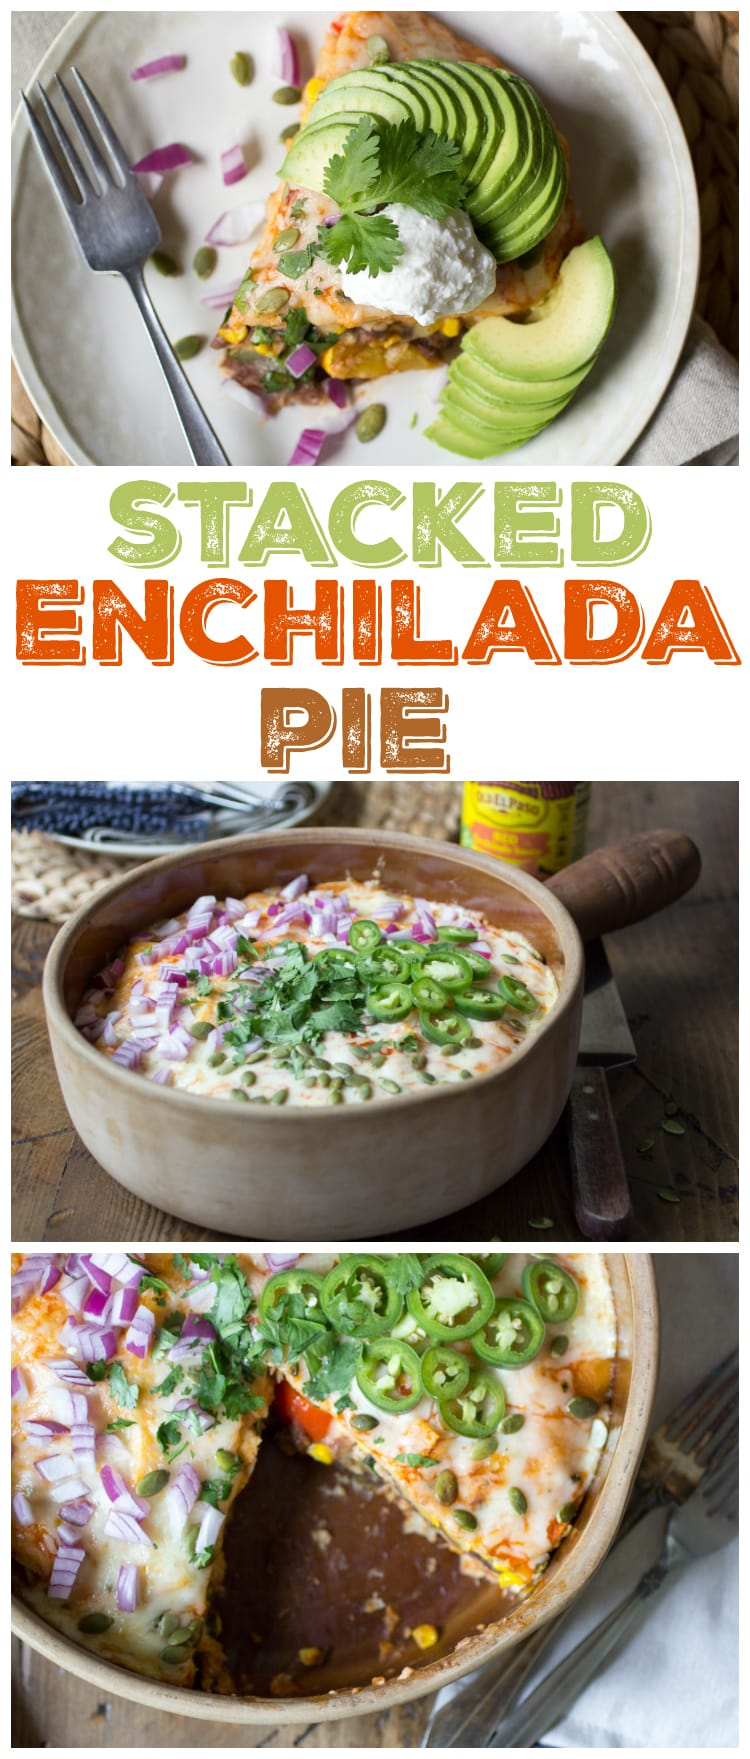 This stacked enchilada pie is filled with roasted summer vegetables, black refried beans, gooey cheese, and robust enchilada sauce. A dinner the whole family will love!